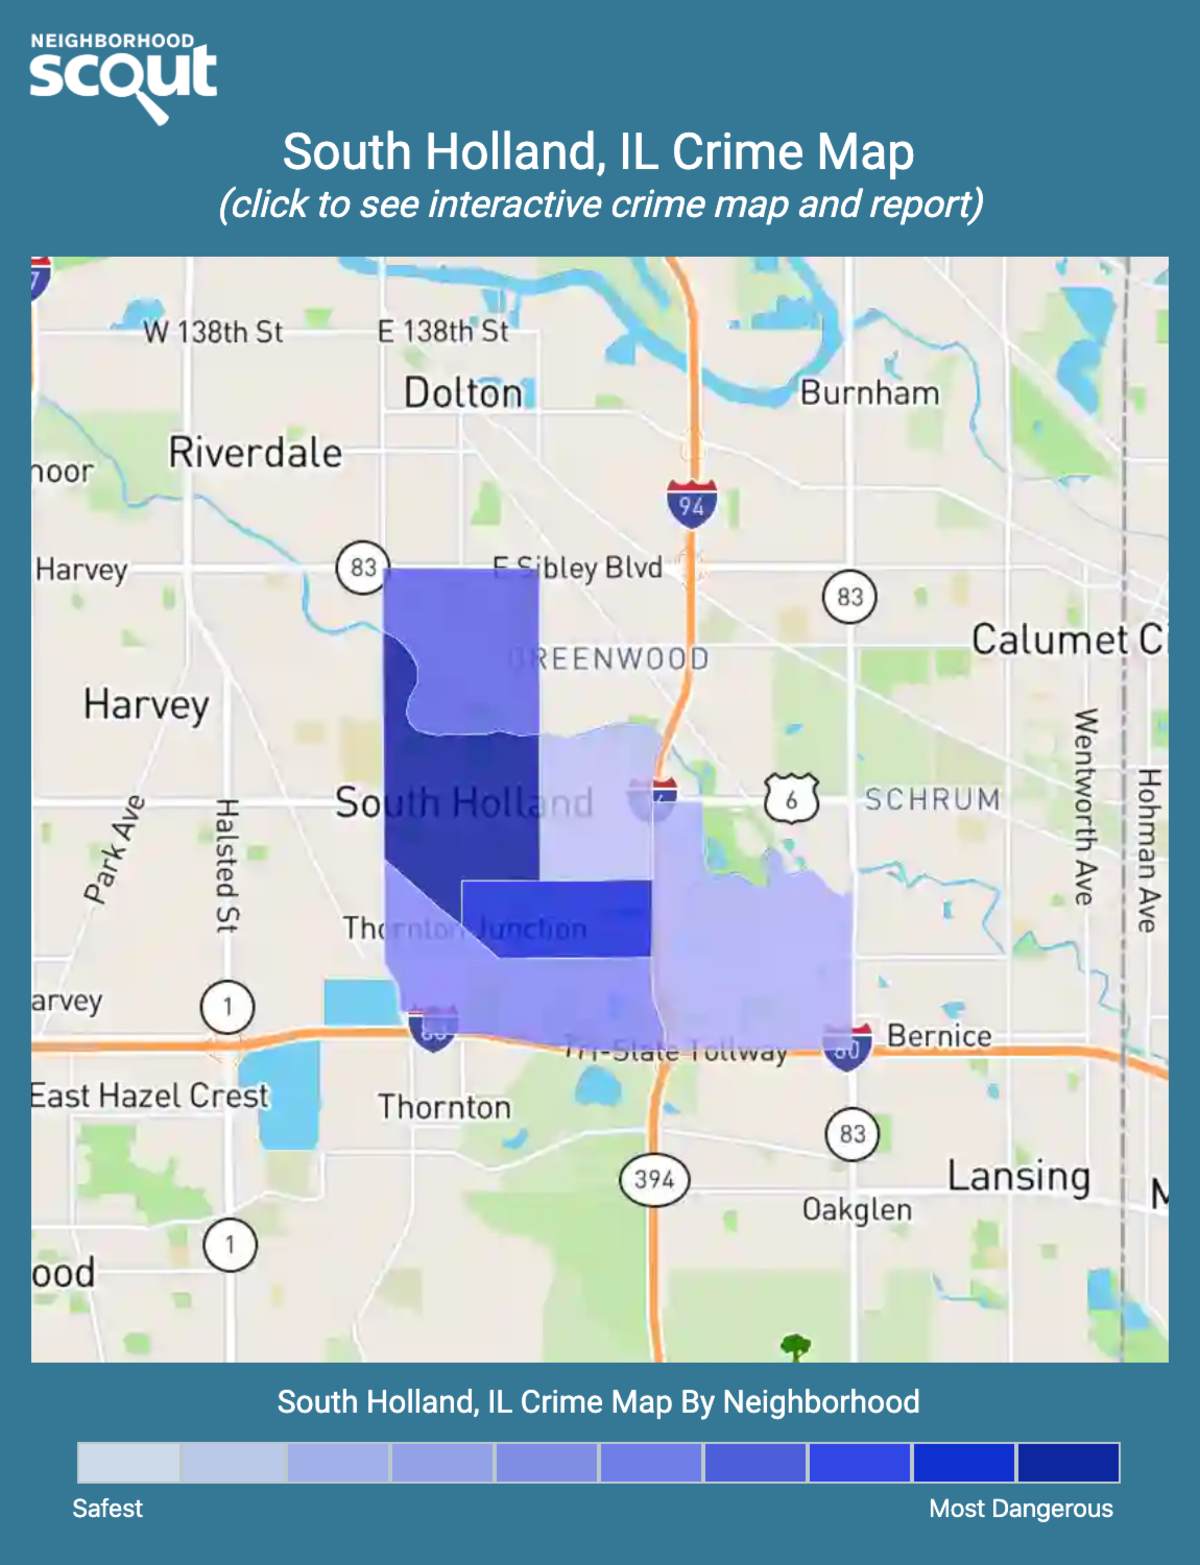 South Holland, Illinois crime map